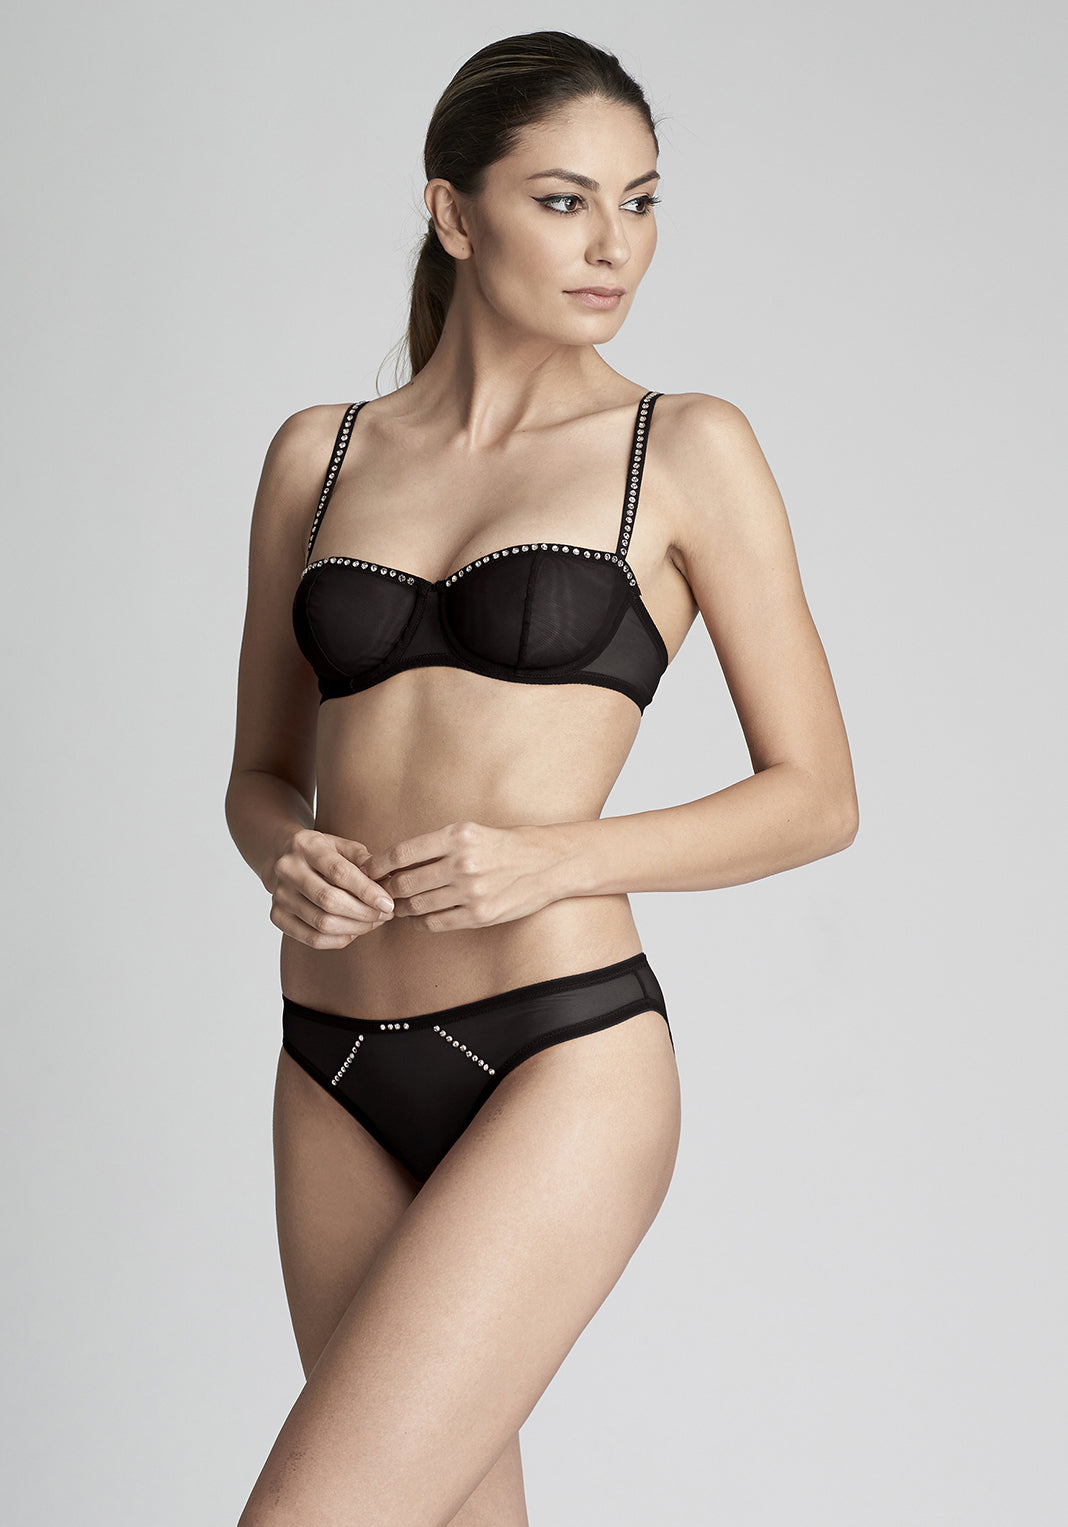 Nuit Interdit Brazilian brief with swarovski crystals in Black